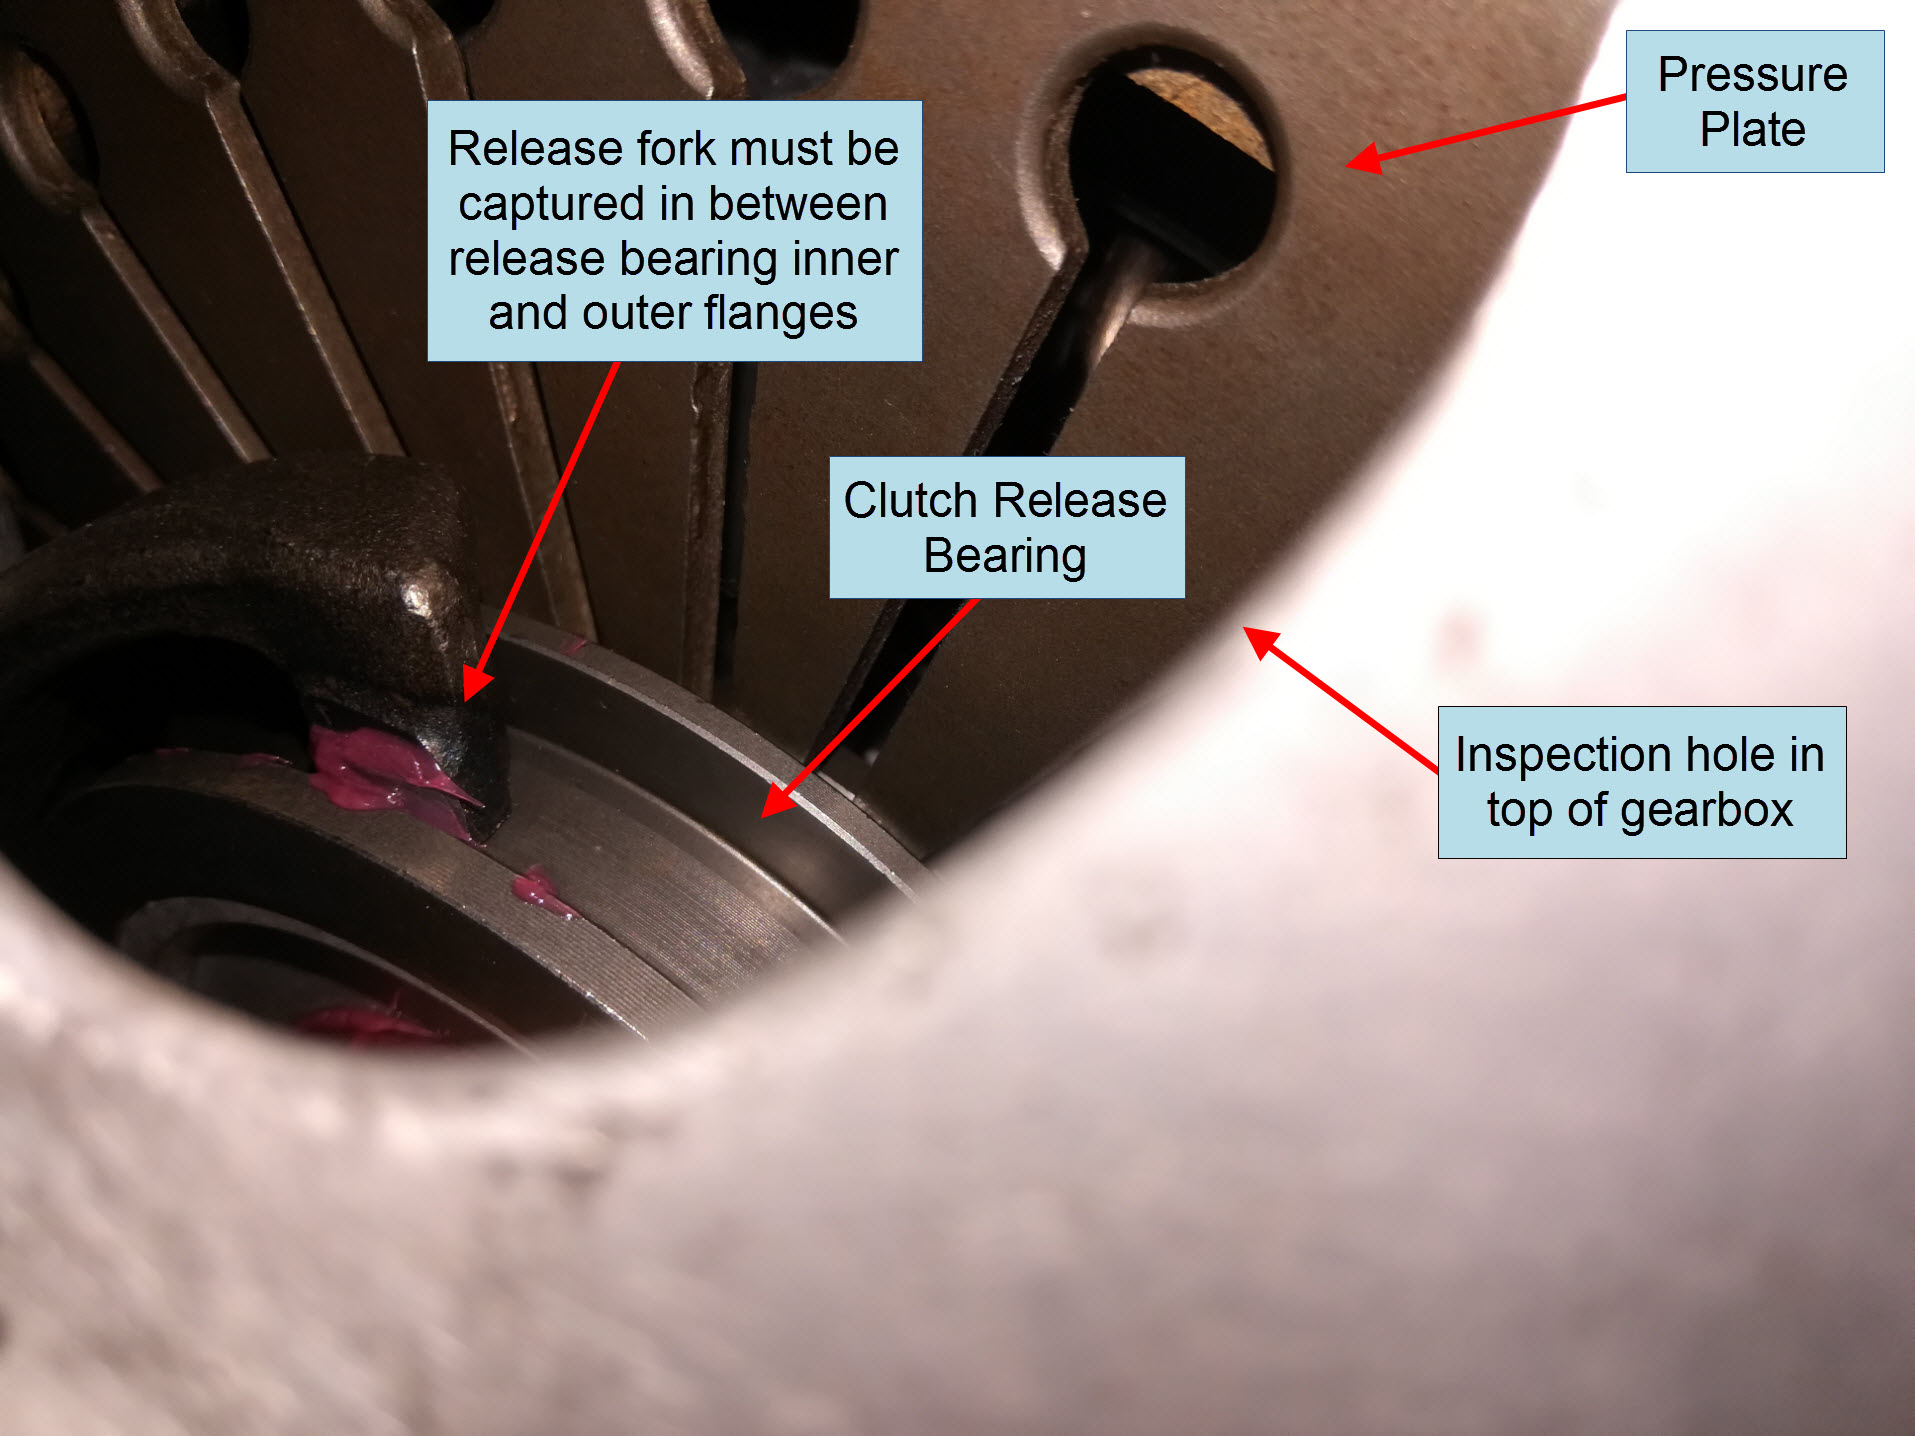 Air-cooled Porsche 911 clutch release fork engagement in clutch release bearing.